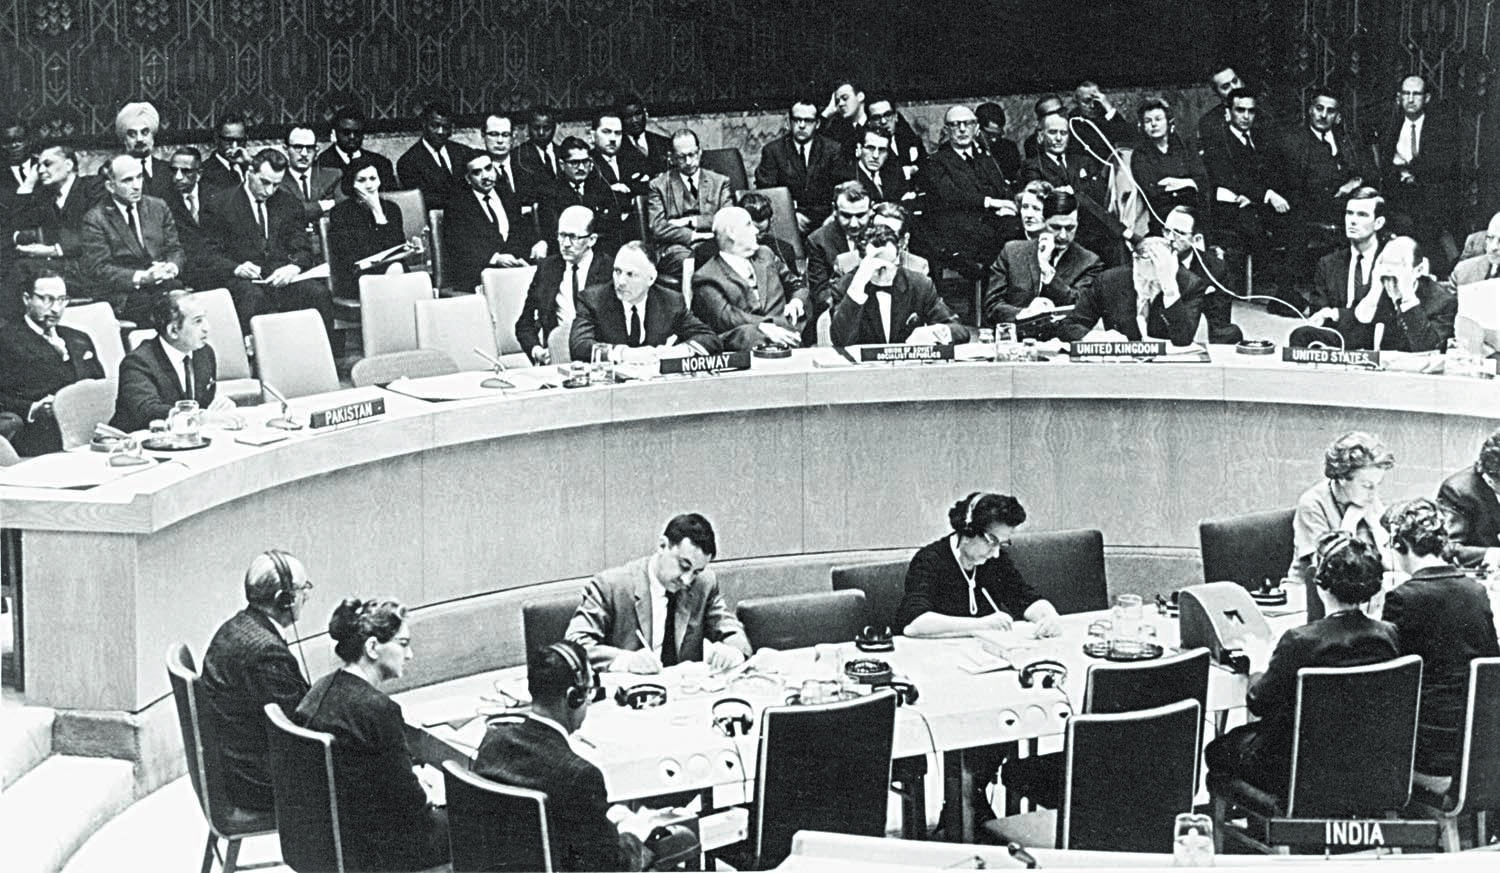 Zulfikar Ali Bhutto at one of the several United Nations Security Council meetings ahead of the fall of Dhaka. | The Directorate of Electronic Media and Publications [DEMP], Ministry of Information, Broadcasting & National Heritage, Islamabad & Karachi.